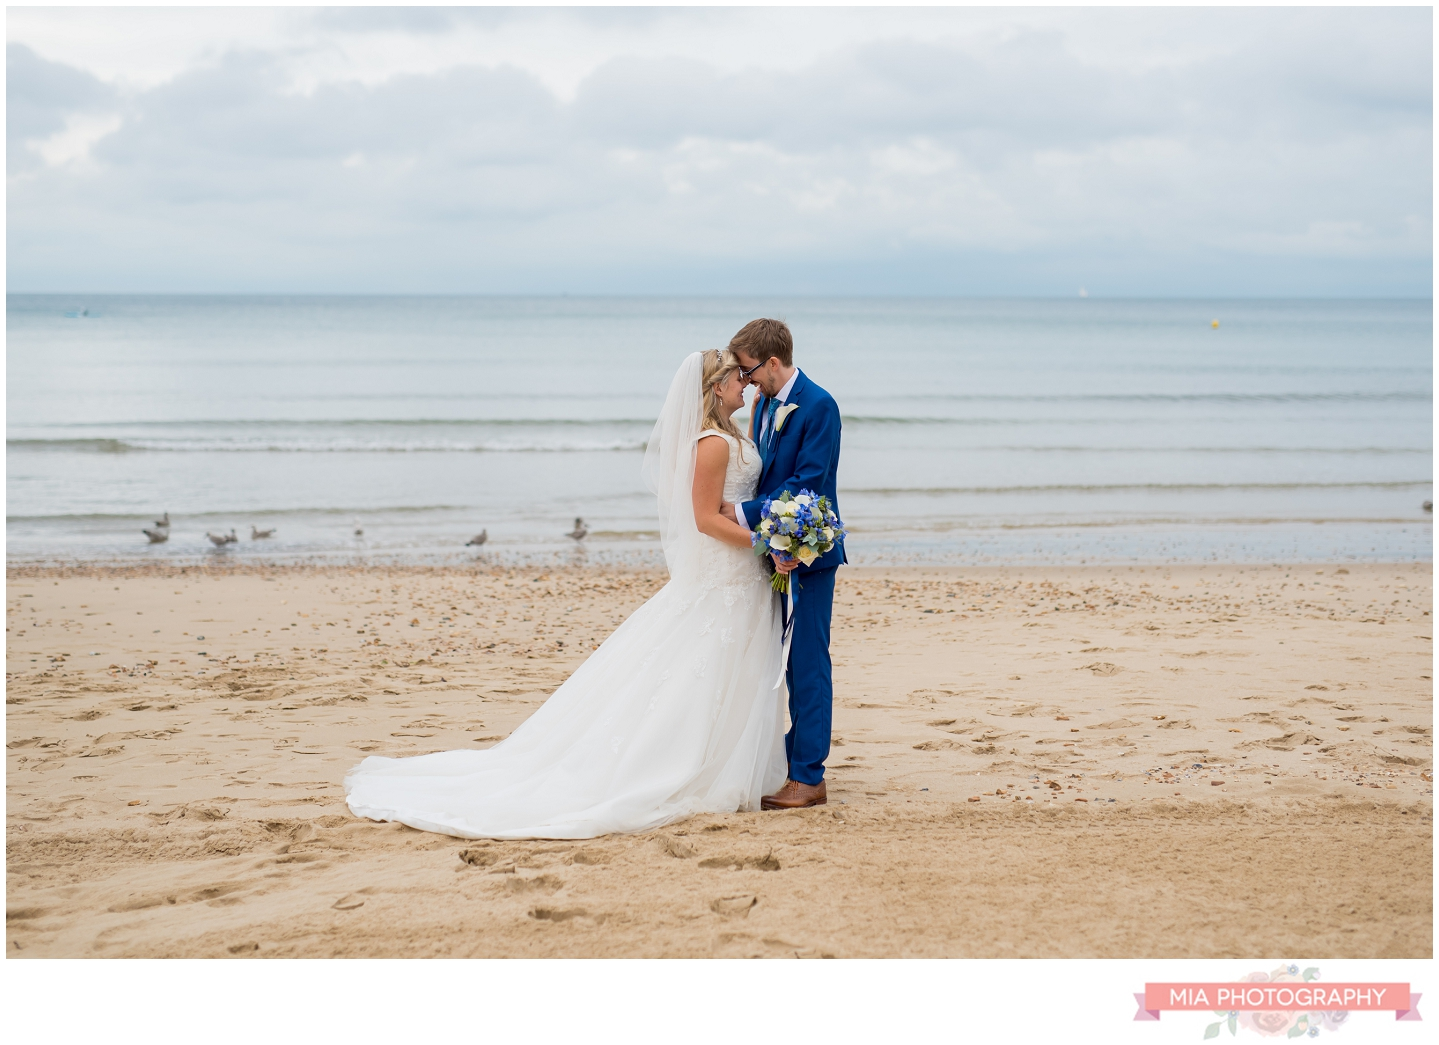 Beach-weddings-Bournemouth-Wedding-001